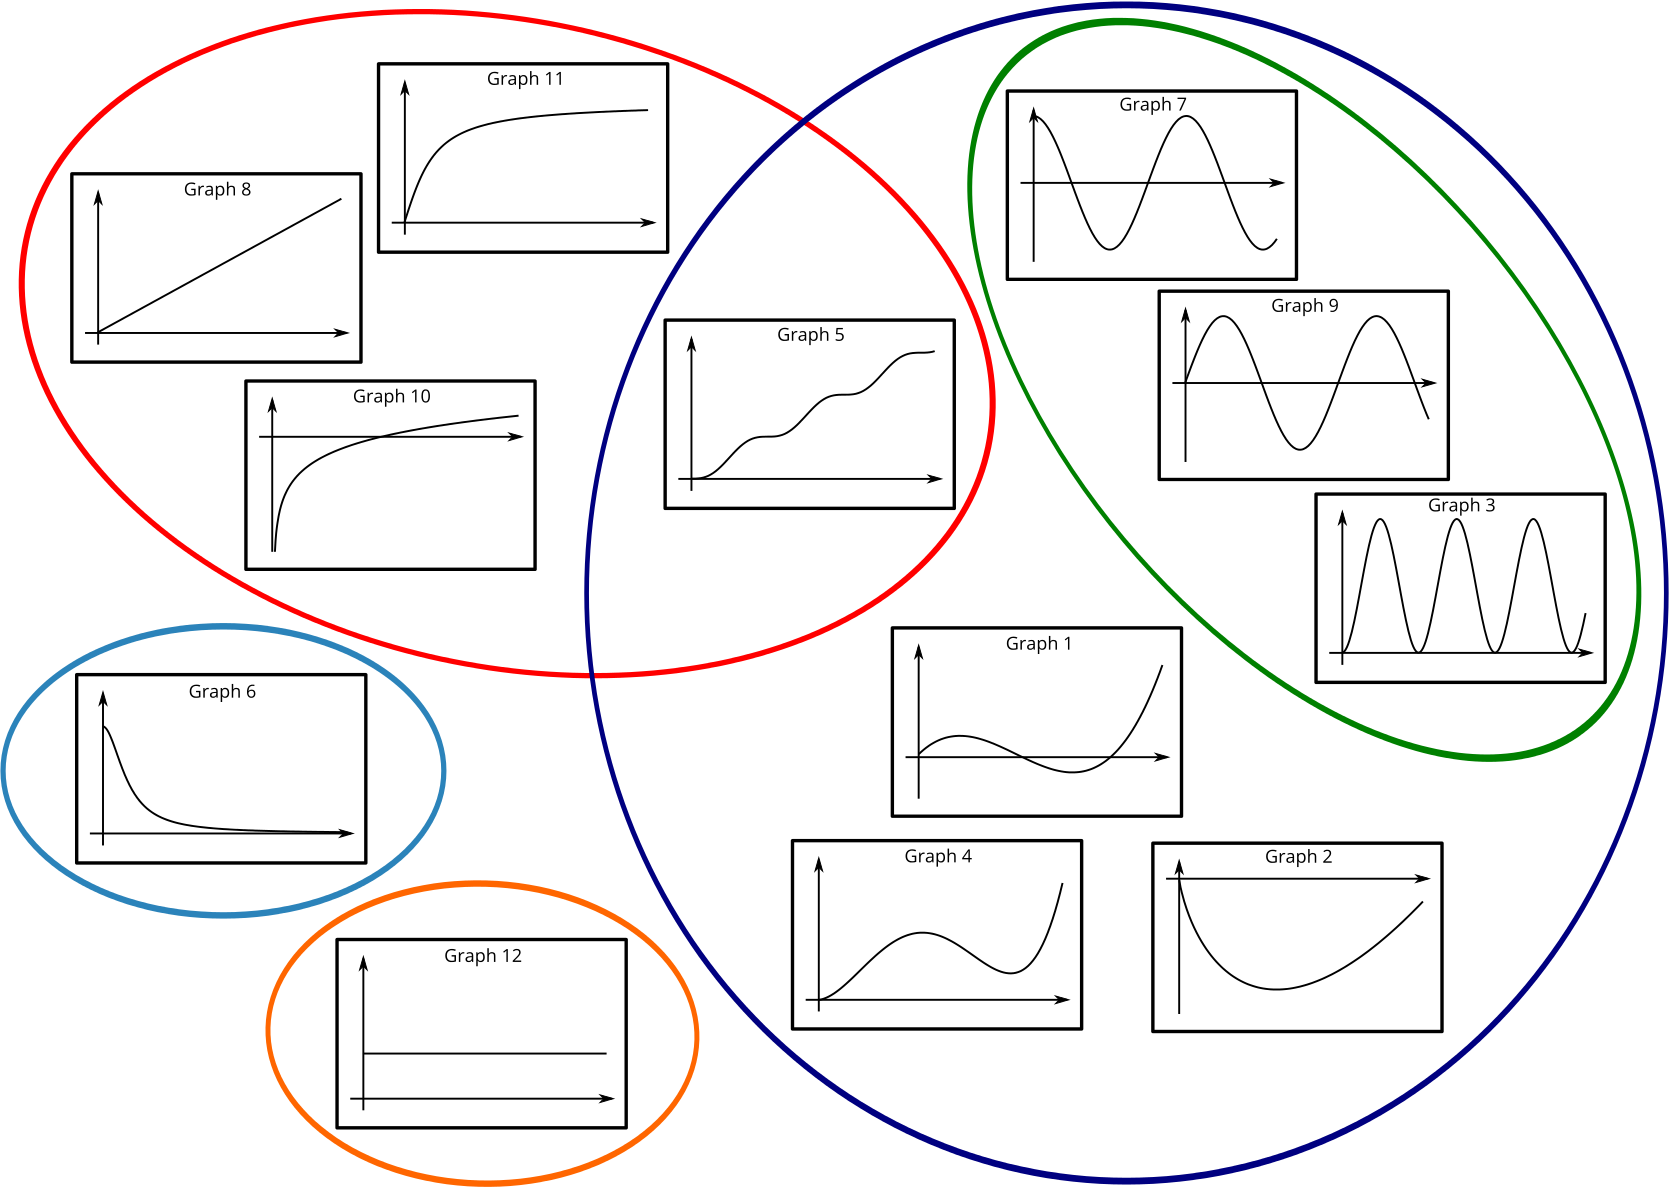 A Venn diagram classifying the graphs into different categories that have common subgroups.